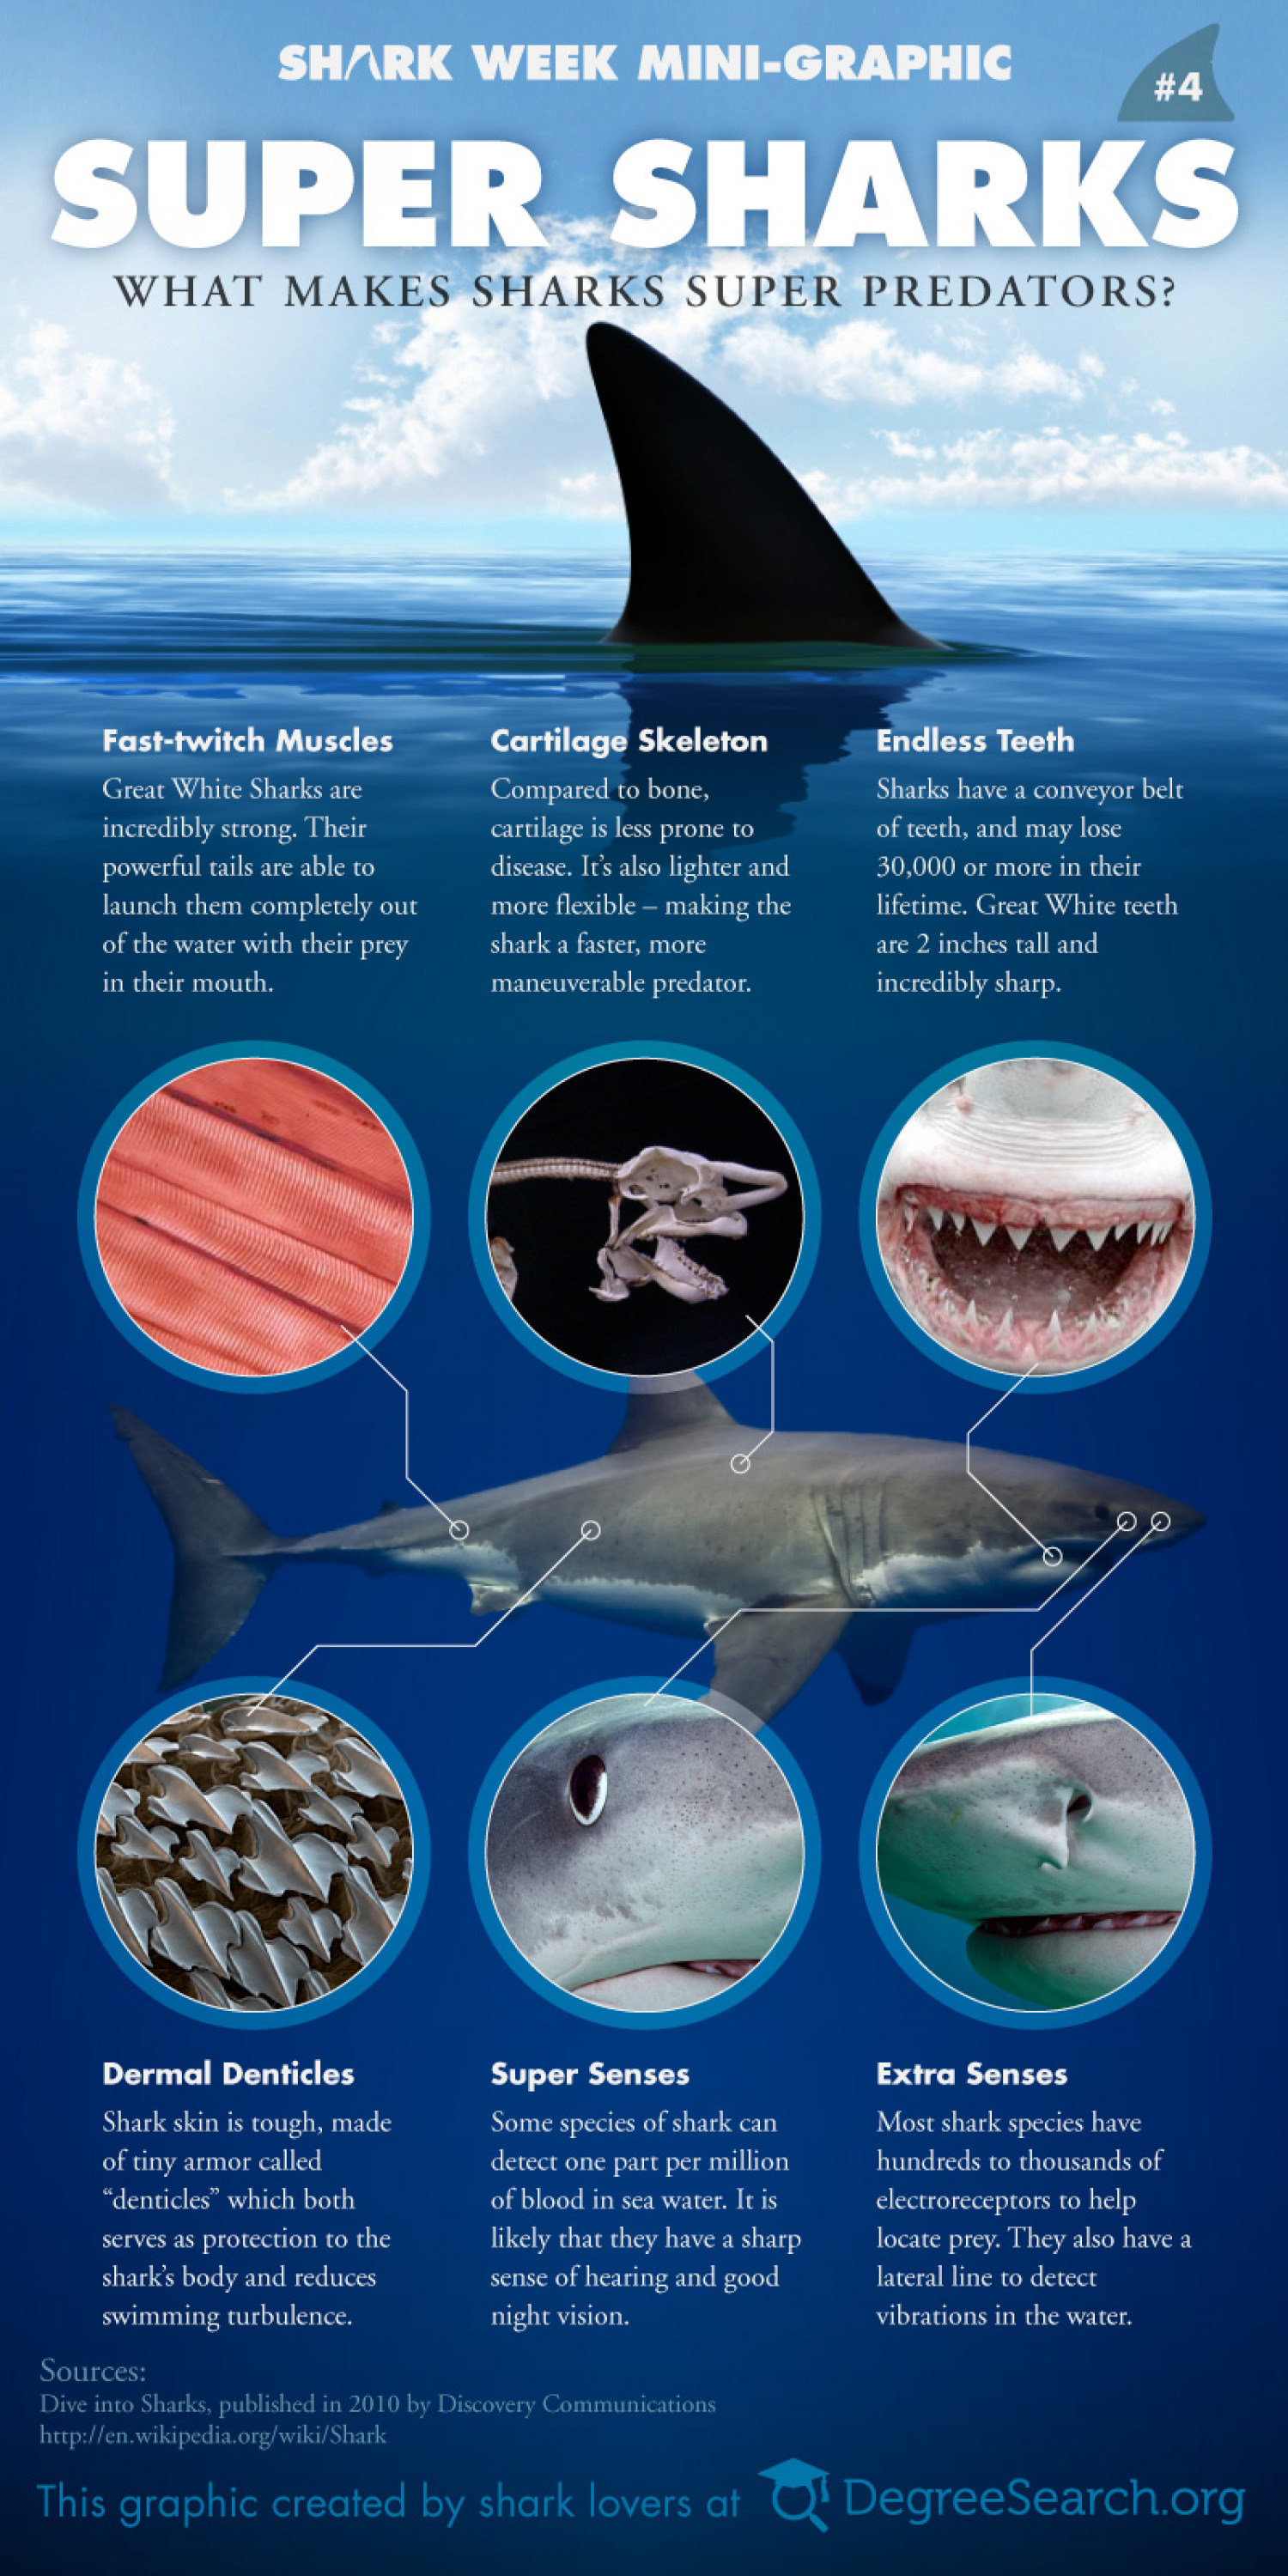 Super Sharks - What Makes Sharks Super Predators? Infographic